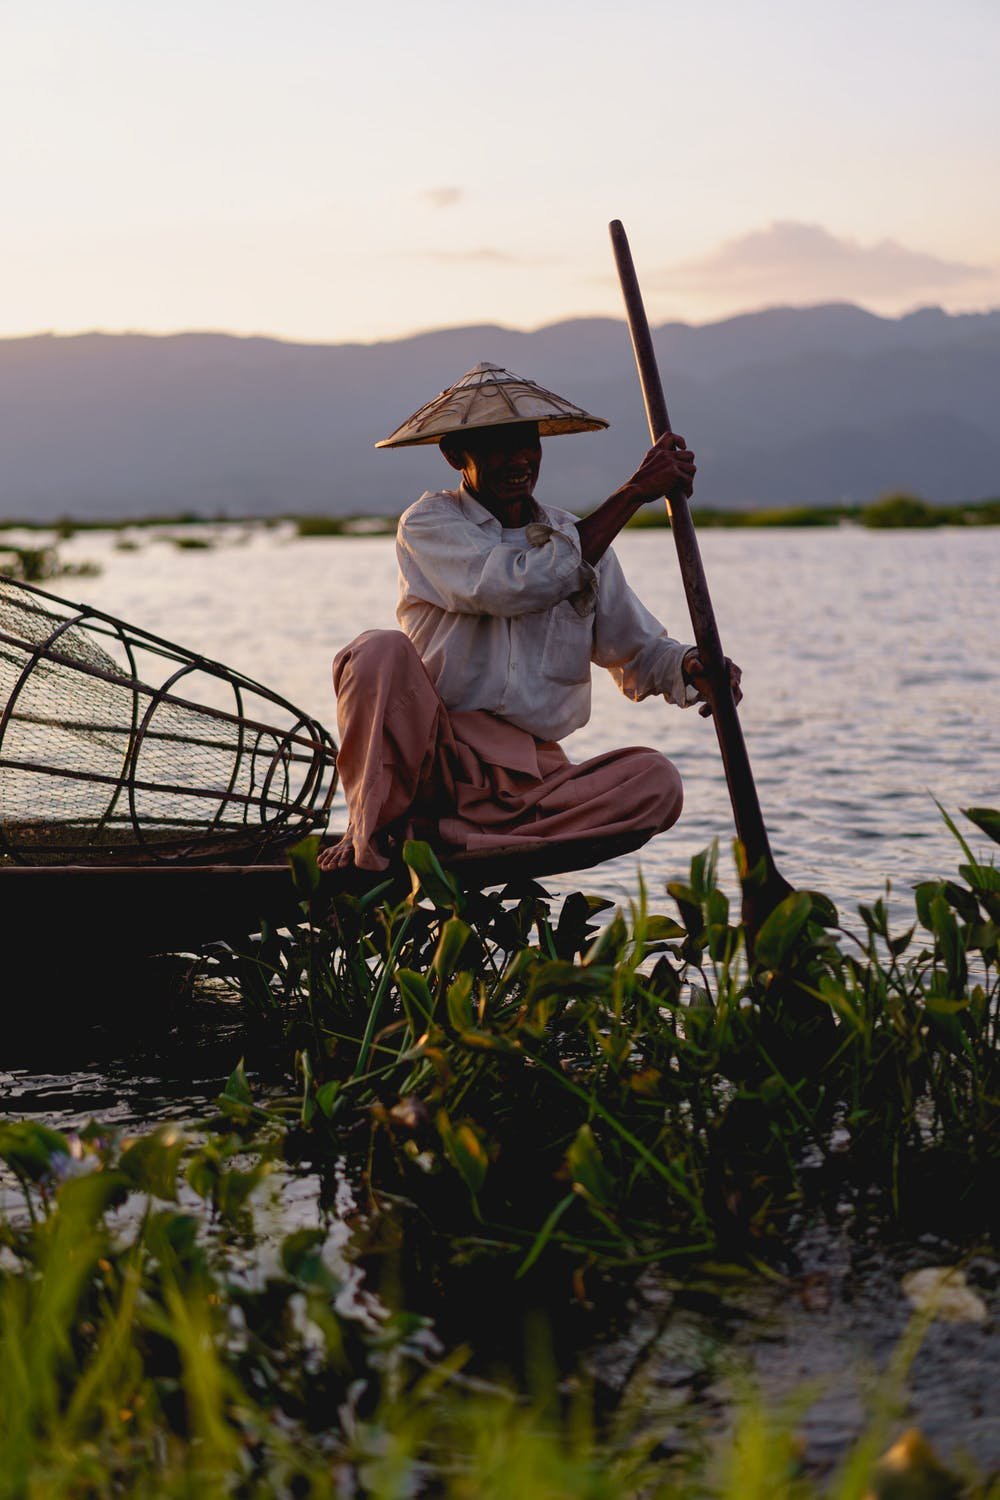 Inle Lake dancing fisherman sitting in a traditional Burmese fishing boat smiling at sunset in Myanmar